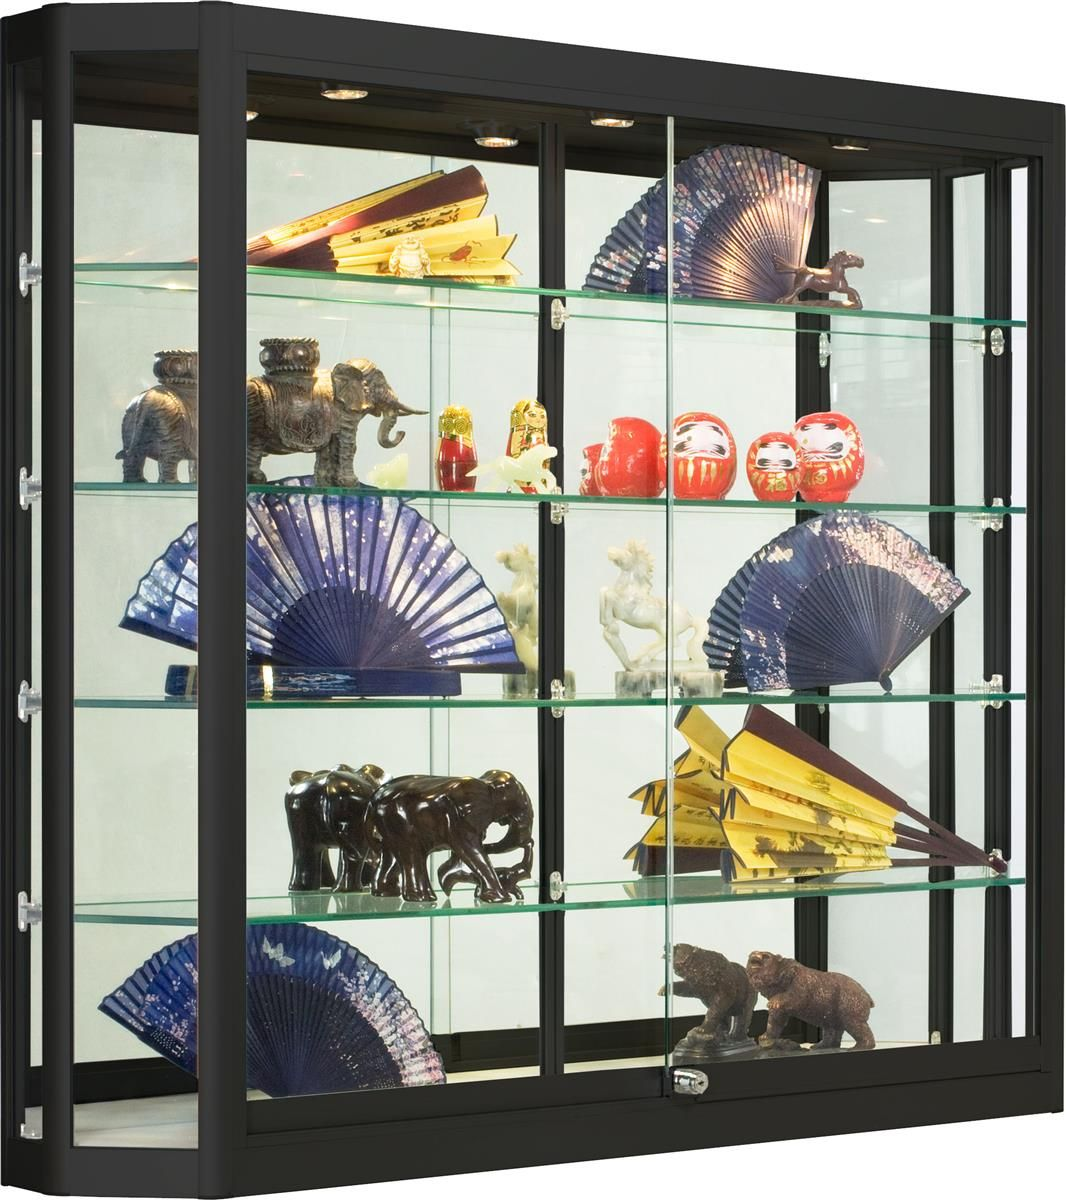 4x3 Wall Mounted Display Case W Angled Front Sliding Doors Locking Black Wall Mounted Display Case Glass Display Case Glass Cabinets Display